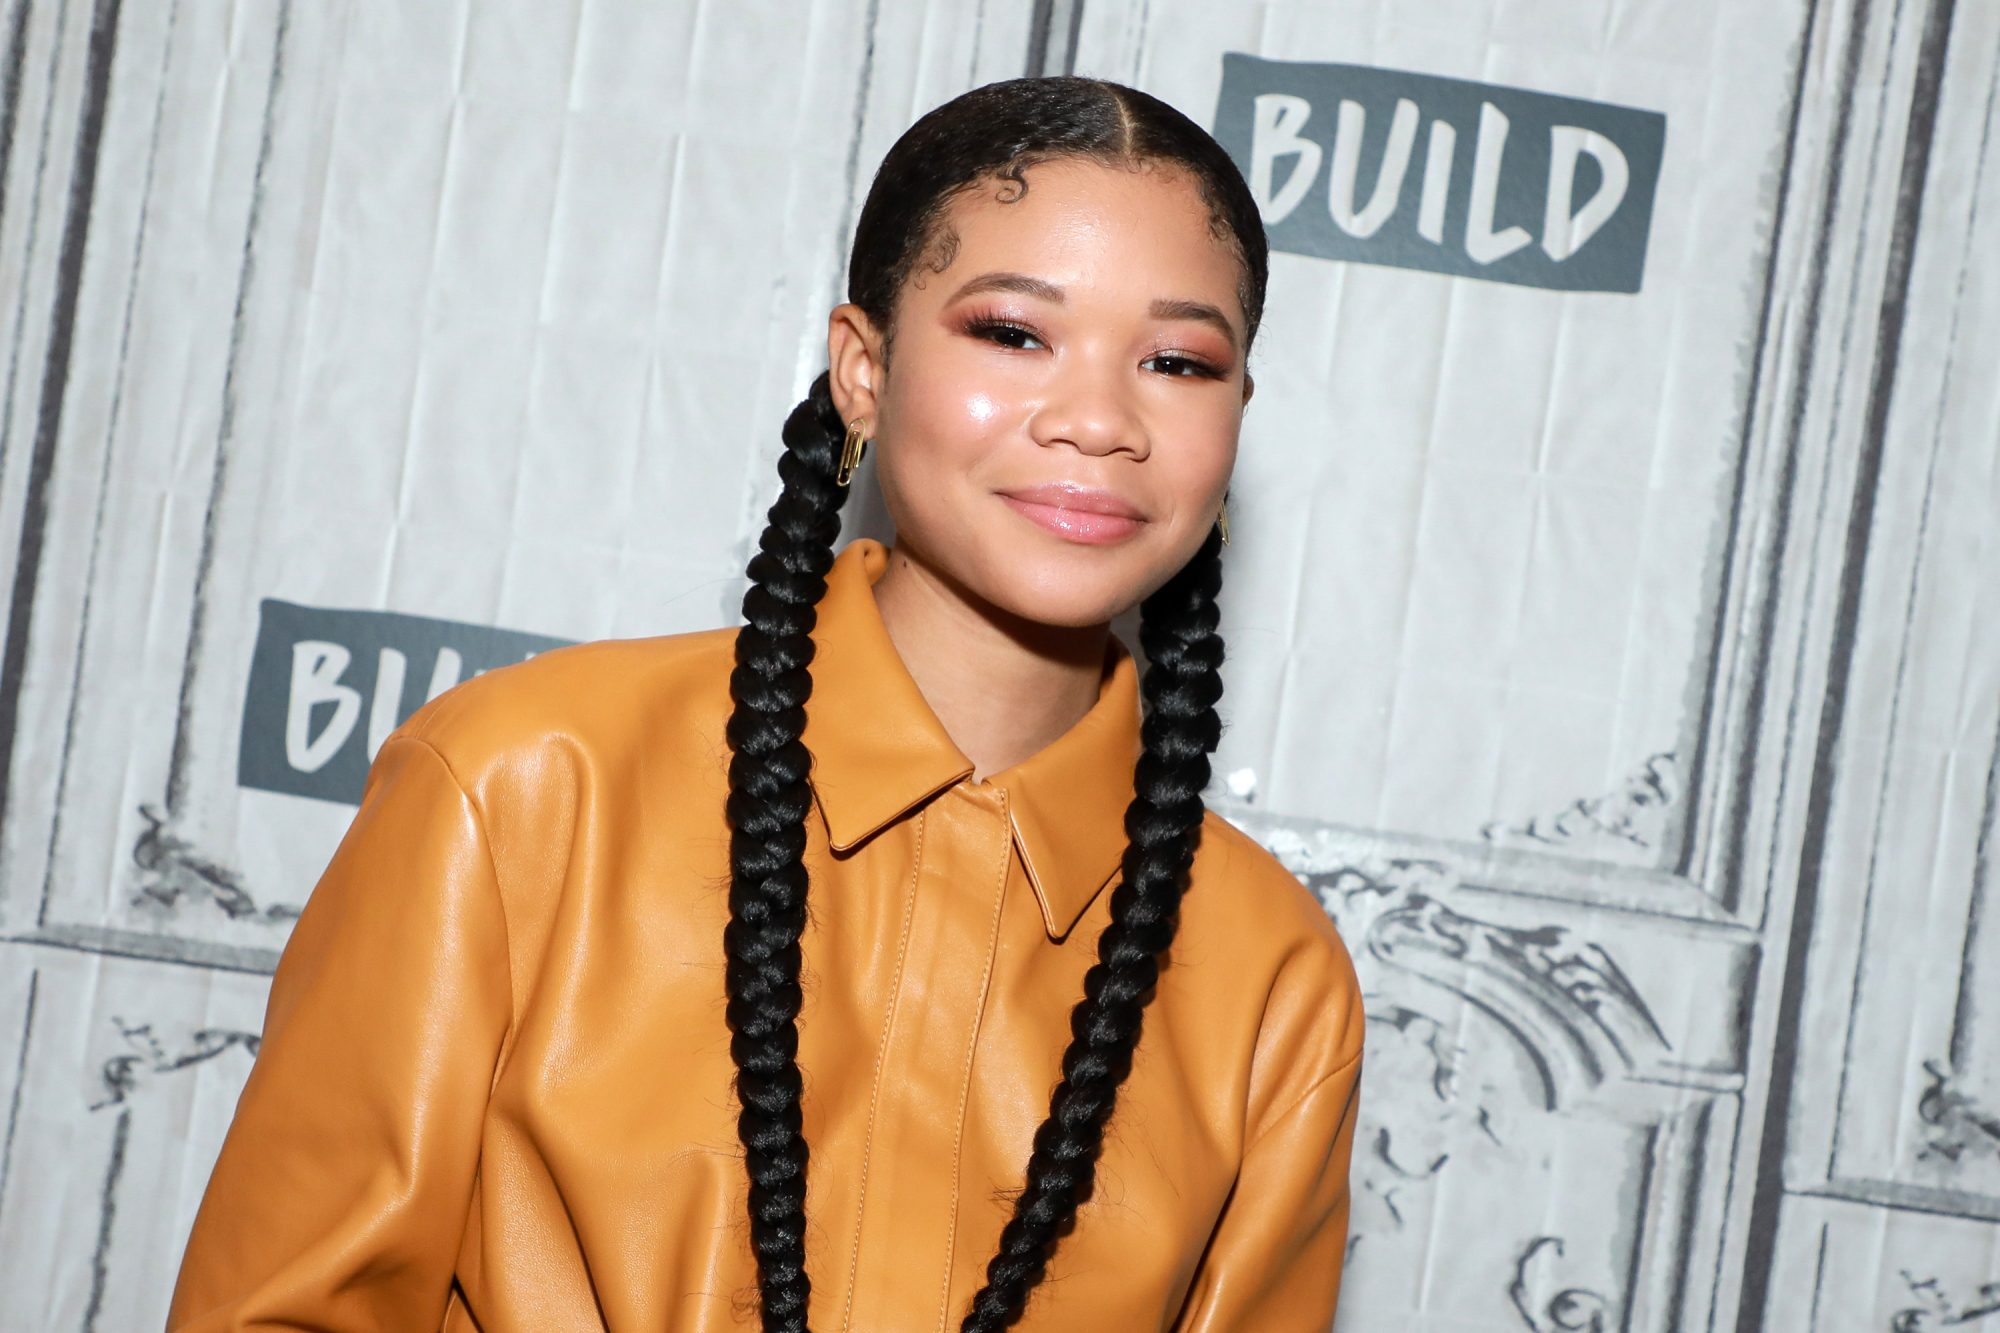 storm reid tattoo 17th birthday